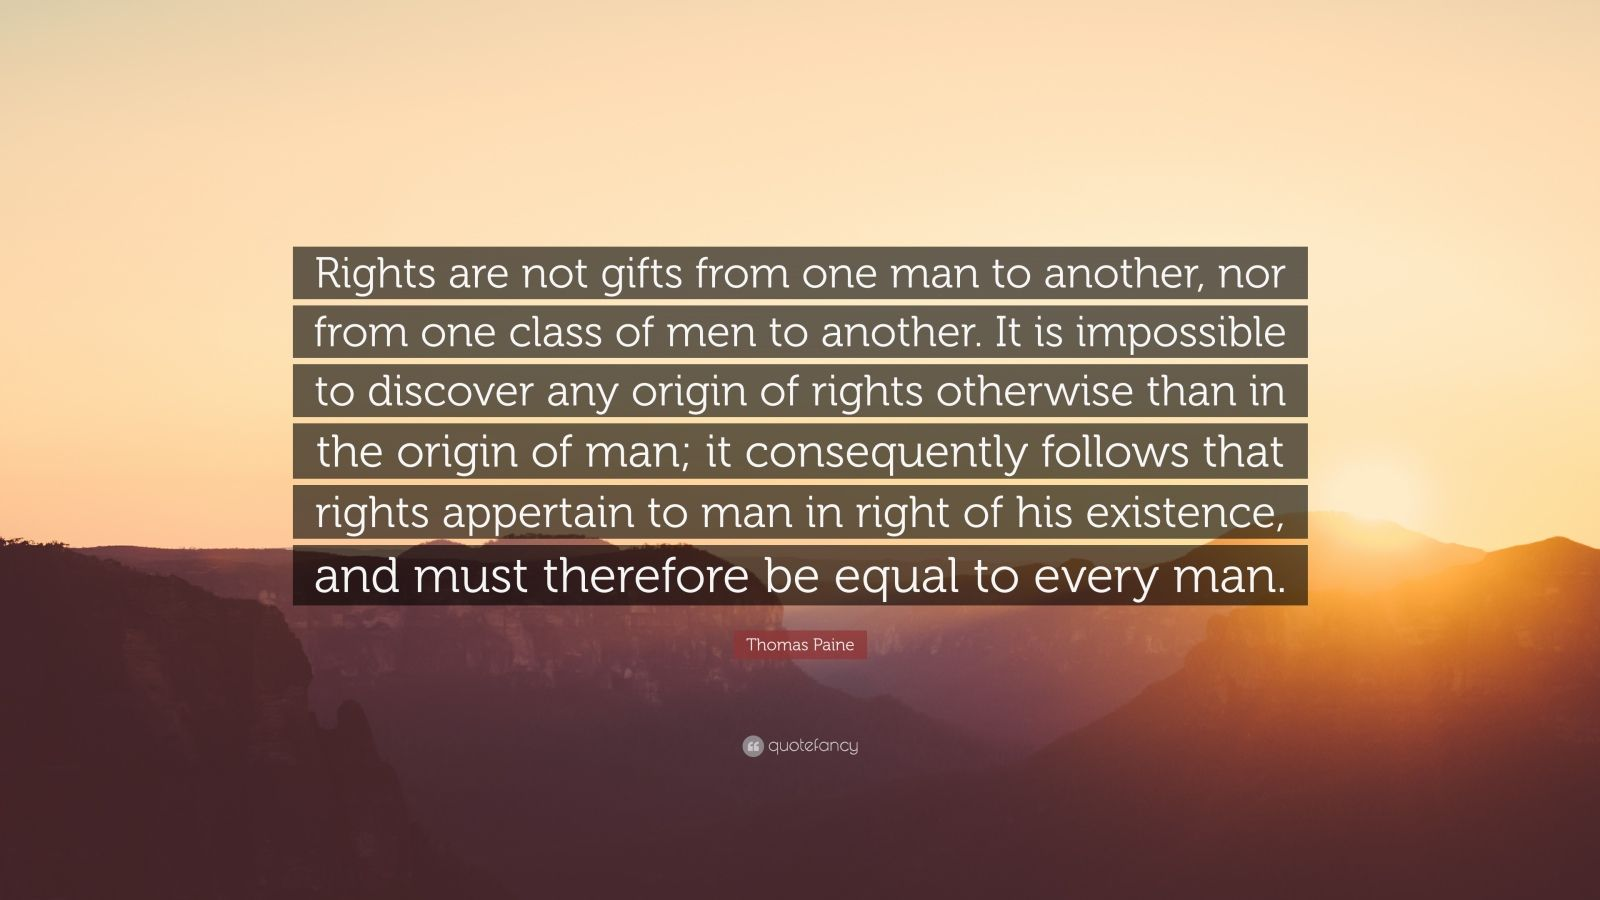 """Thomas Paine Quote: """"Rights are not gifts from one man to another, nor from one class of men to another. It is impossible to discover any origin of rights otherwise than in the origin of man; it consequently follows that rights appertain to man in right of his existence, and must therefore be equal to every man."""""""